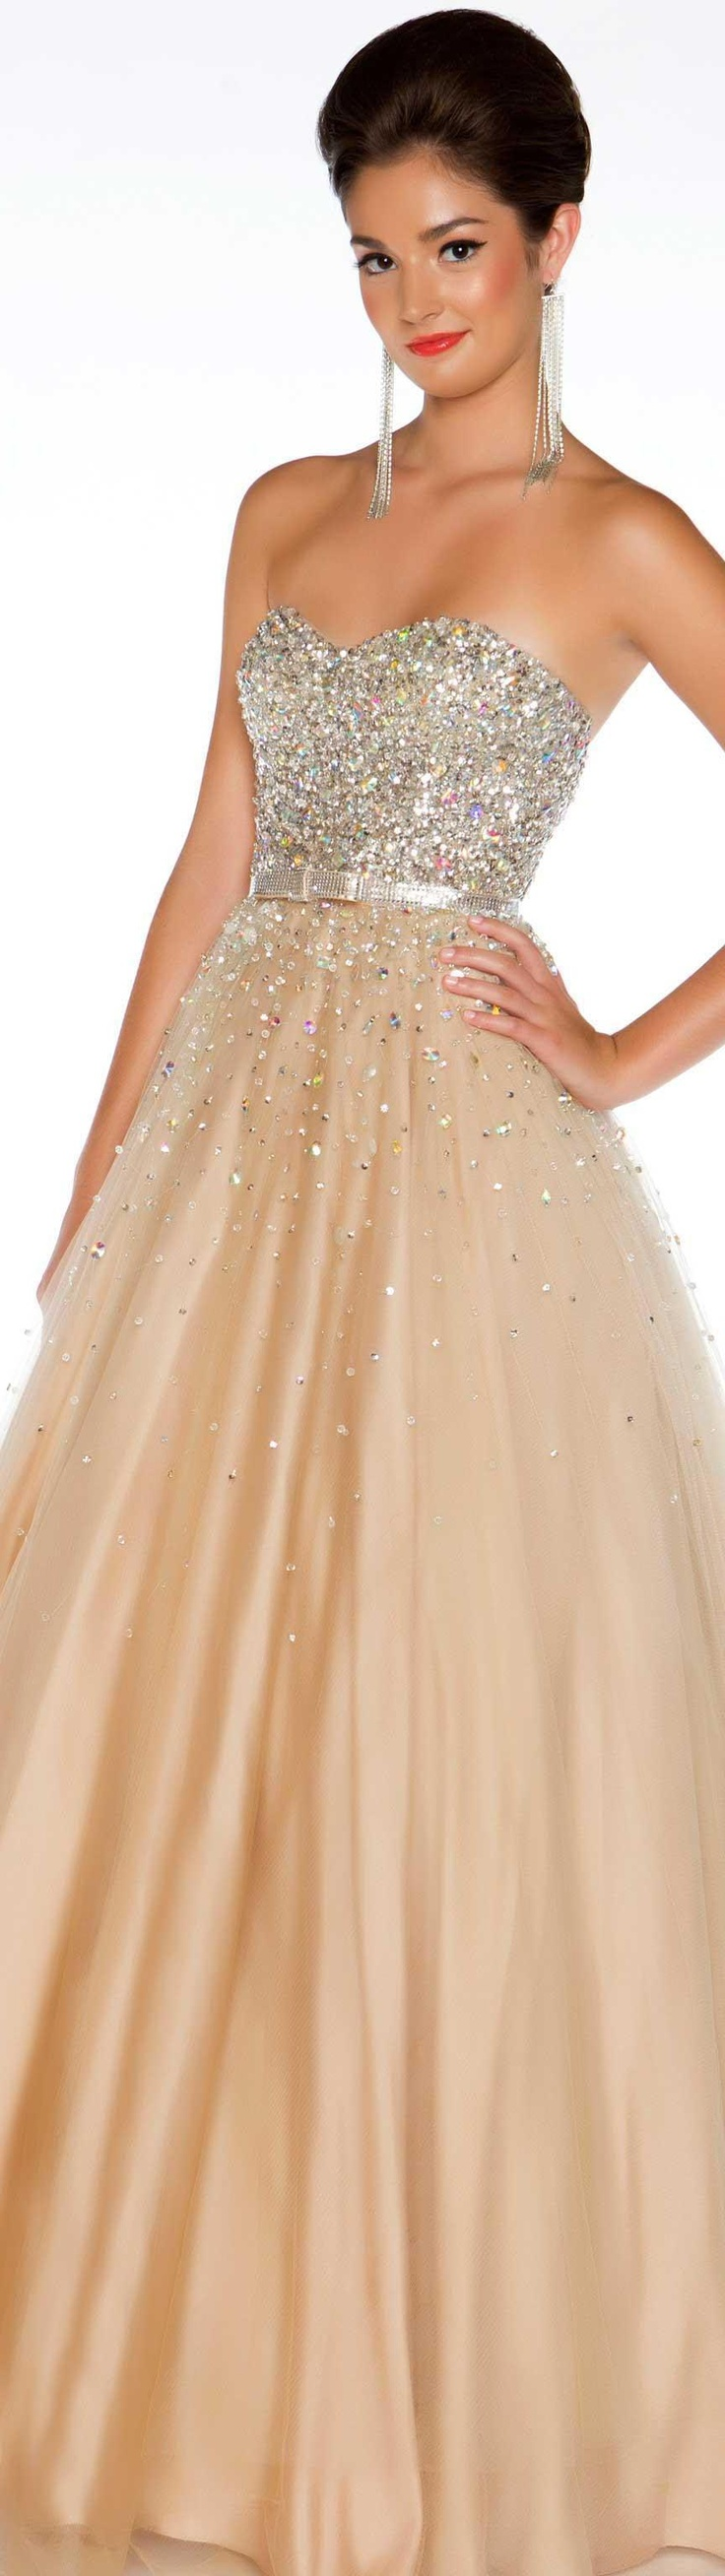 Mac Duggal couture BALL GOWNS  STYLE 61184H <3